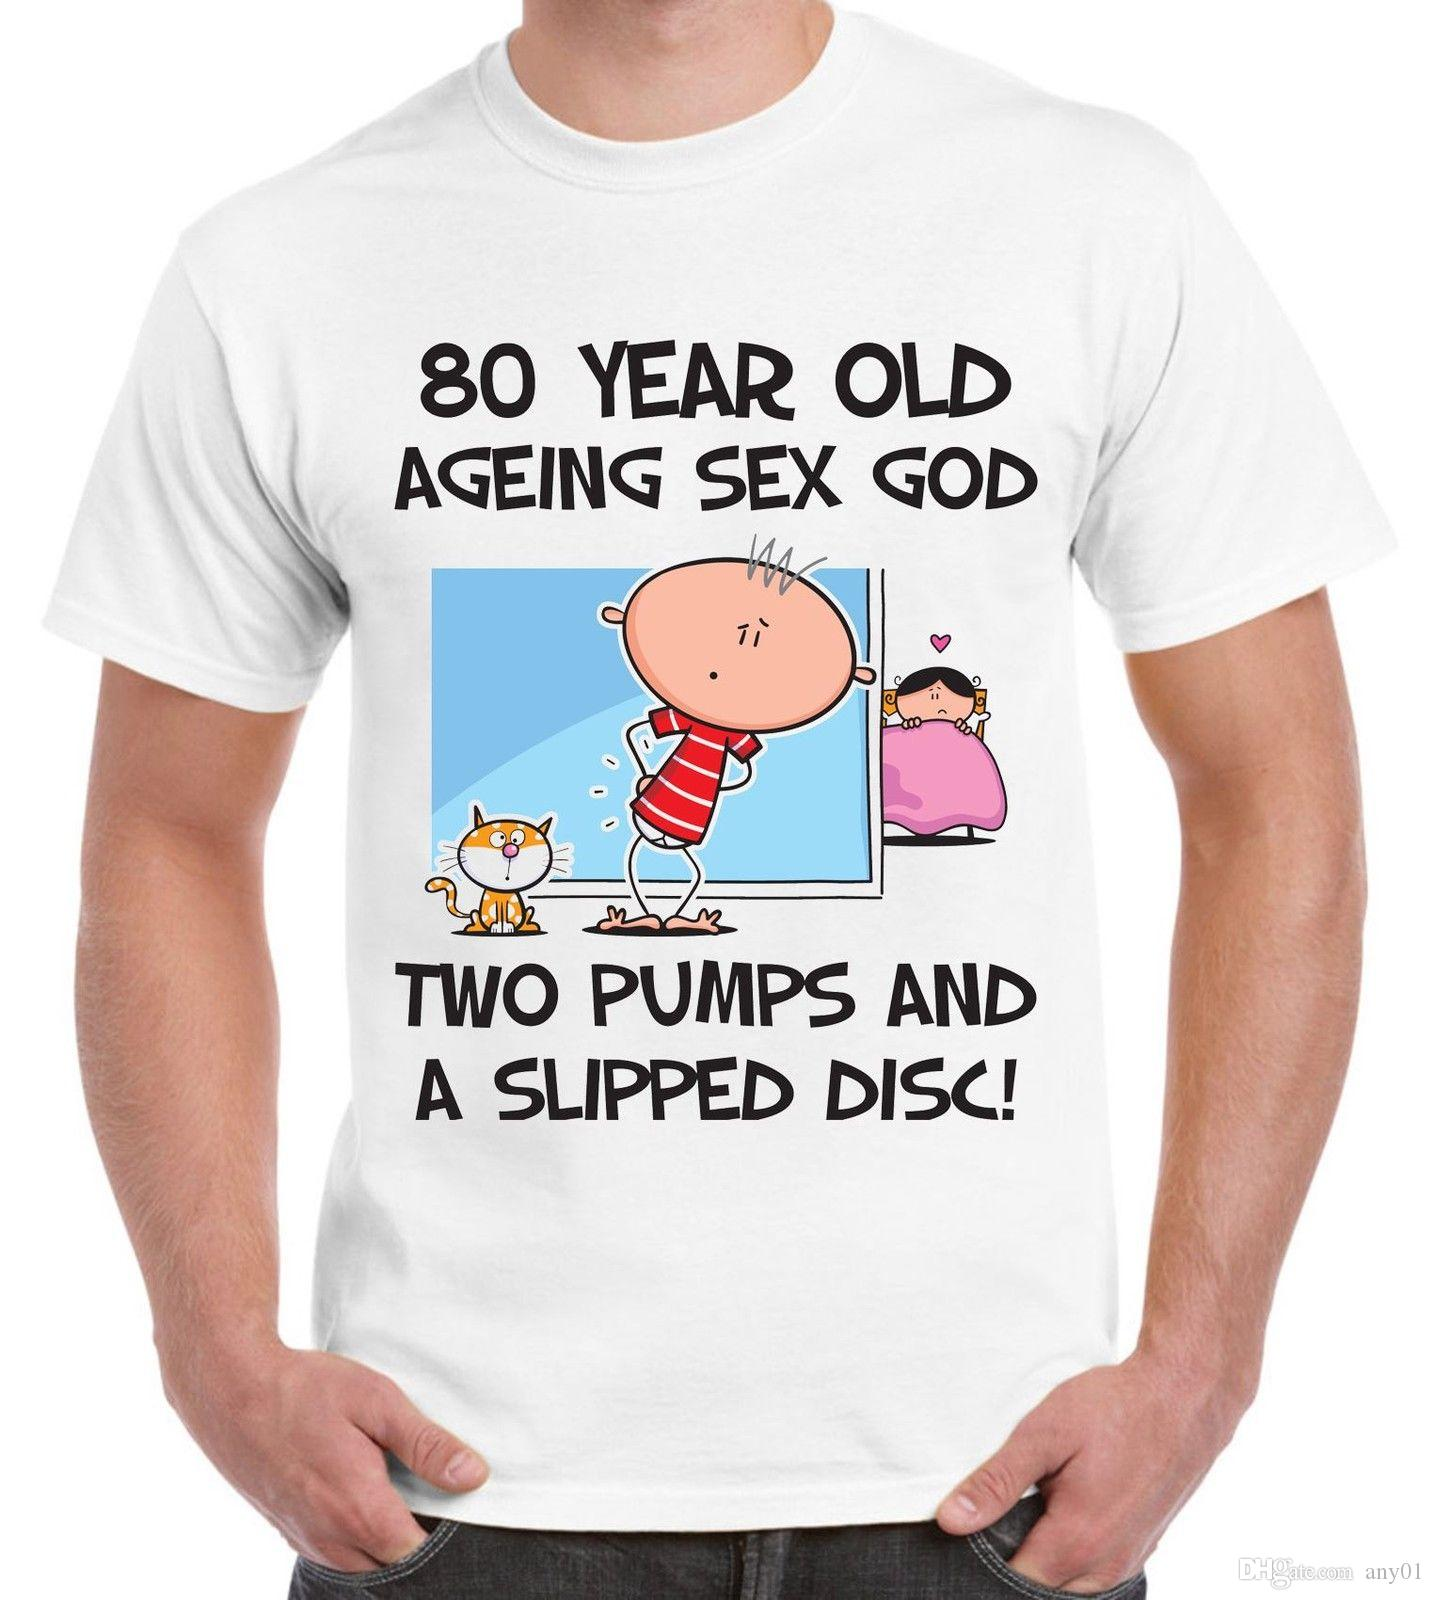 Ageing Sex God 80th Birthday Present MenS T Shirt Funny Gift Slogan On Online Tee Shirts Shopping From Any01 1319